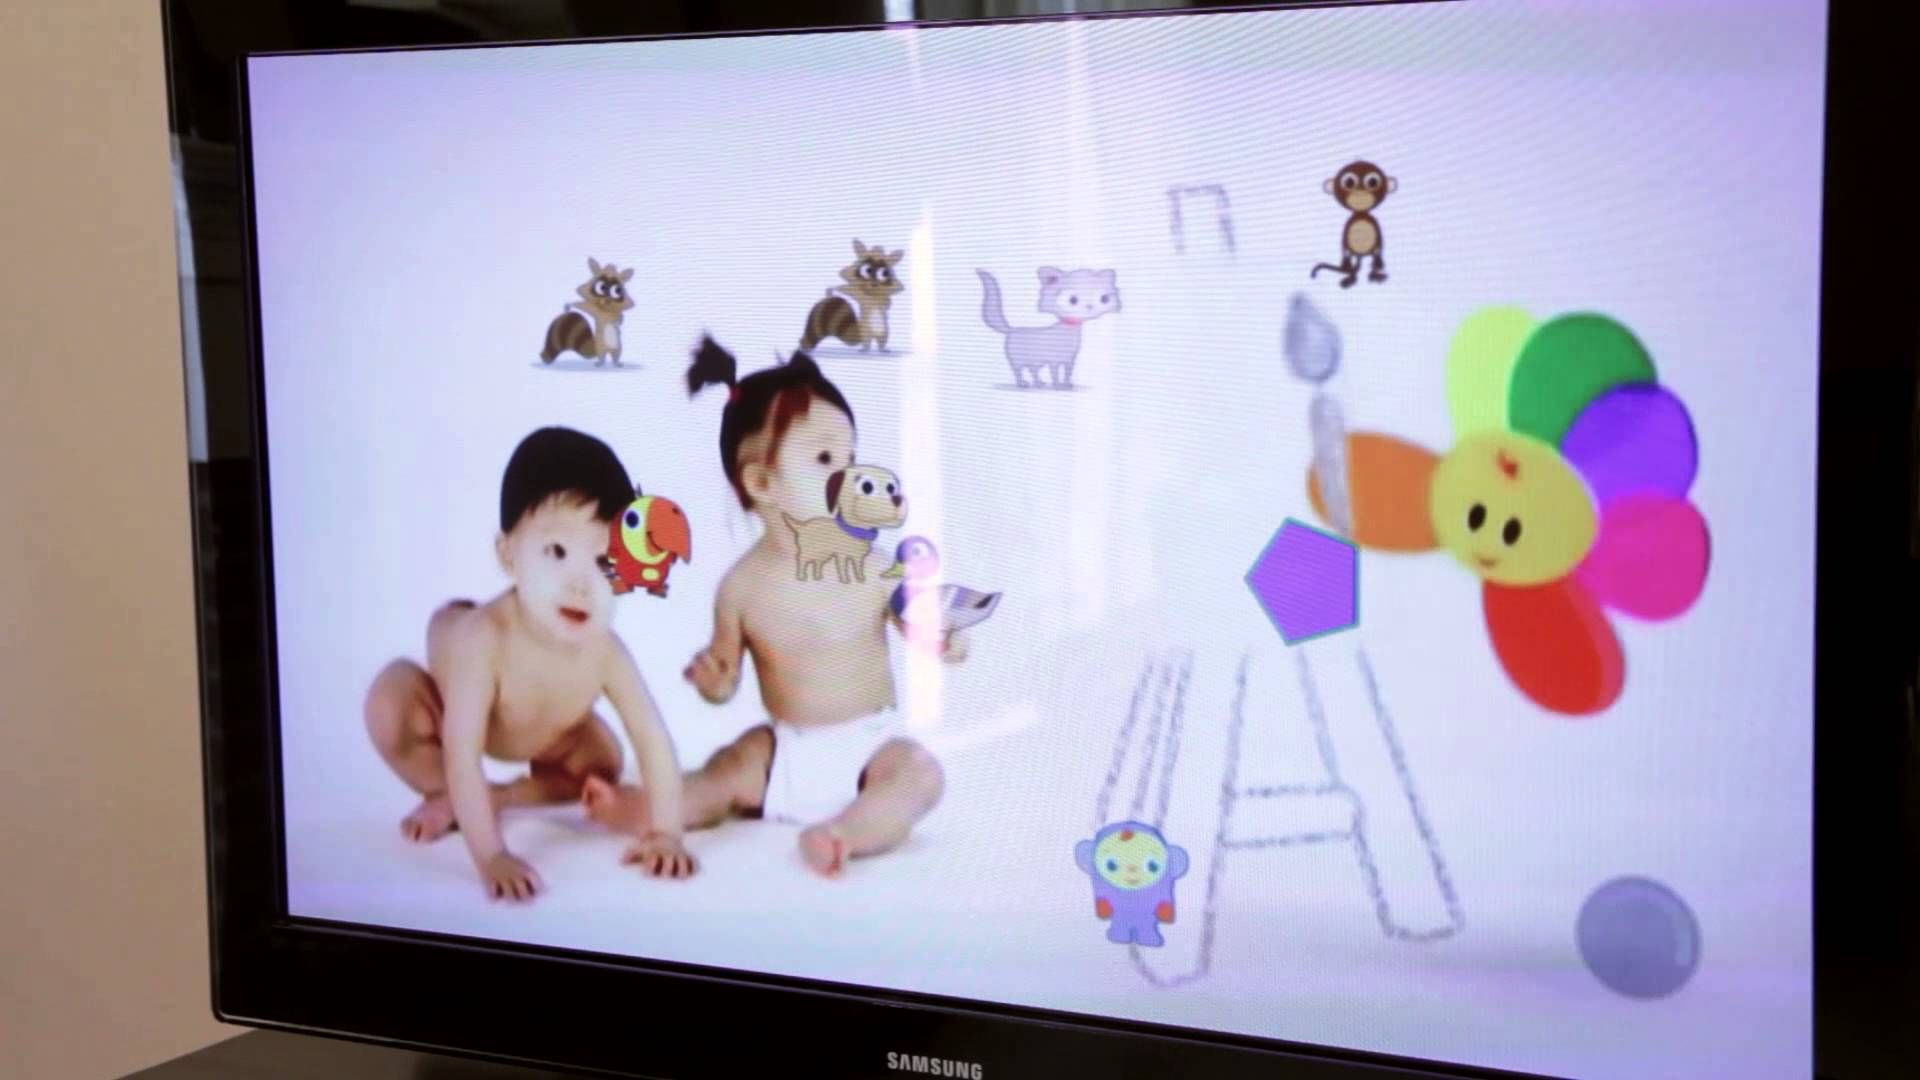 Bring tech into playtime! BabyFirst TV's Uverse App will